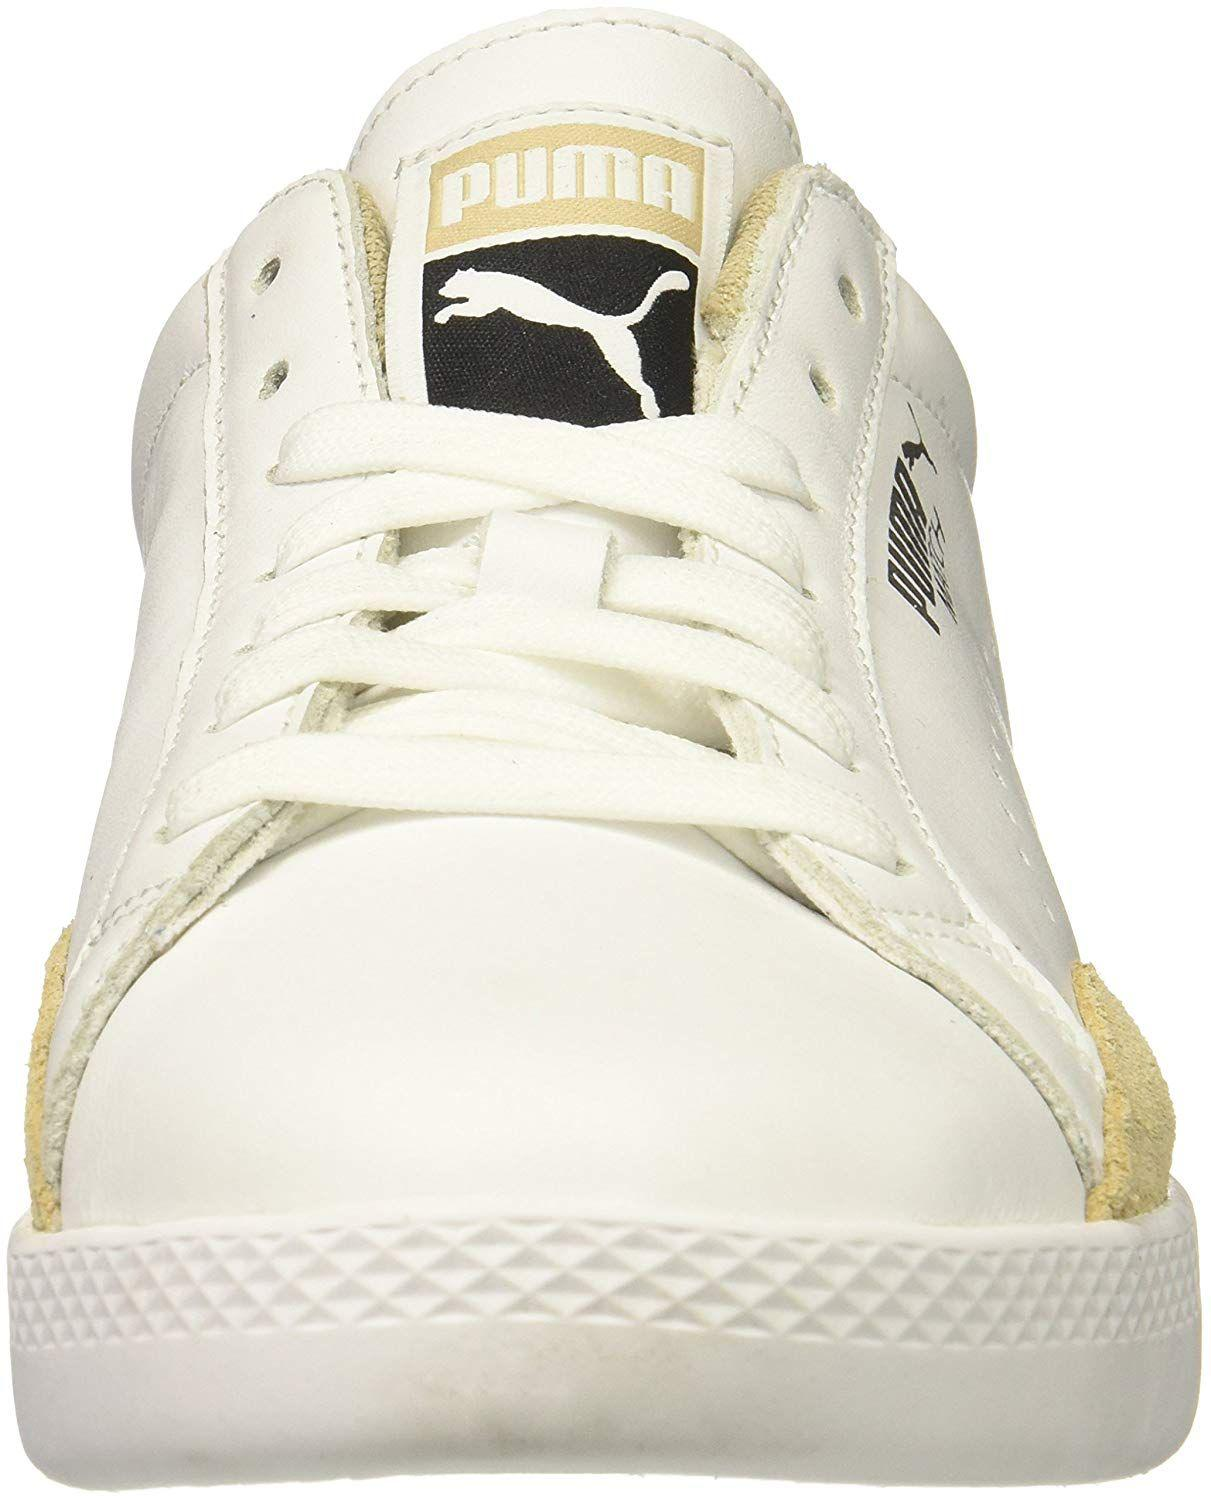 c3b4a177ad4c Lyst - Puma Womens Match Lo Leather Low Top Lace Up Running Sneaker